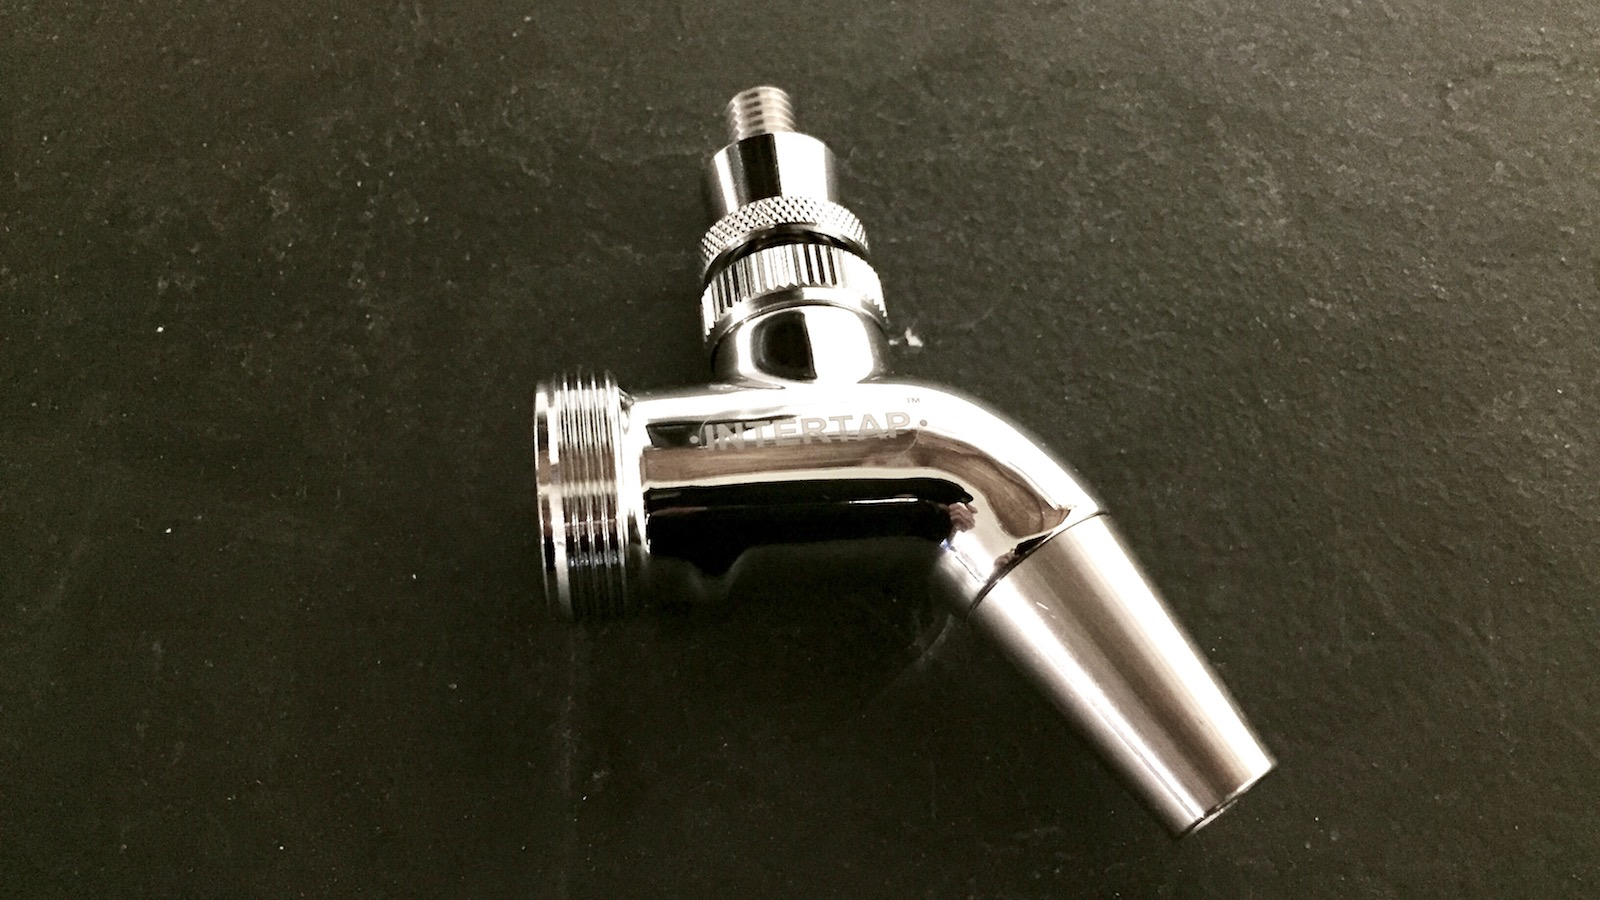 Intertap Ball Lock Spout Interchangeable Stainless For Beer Guns and Cleaning